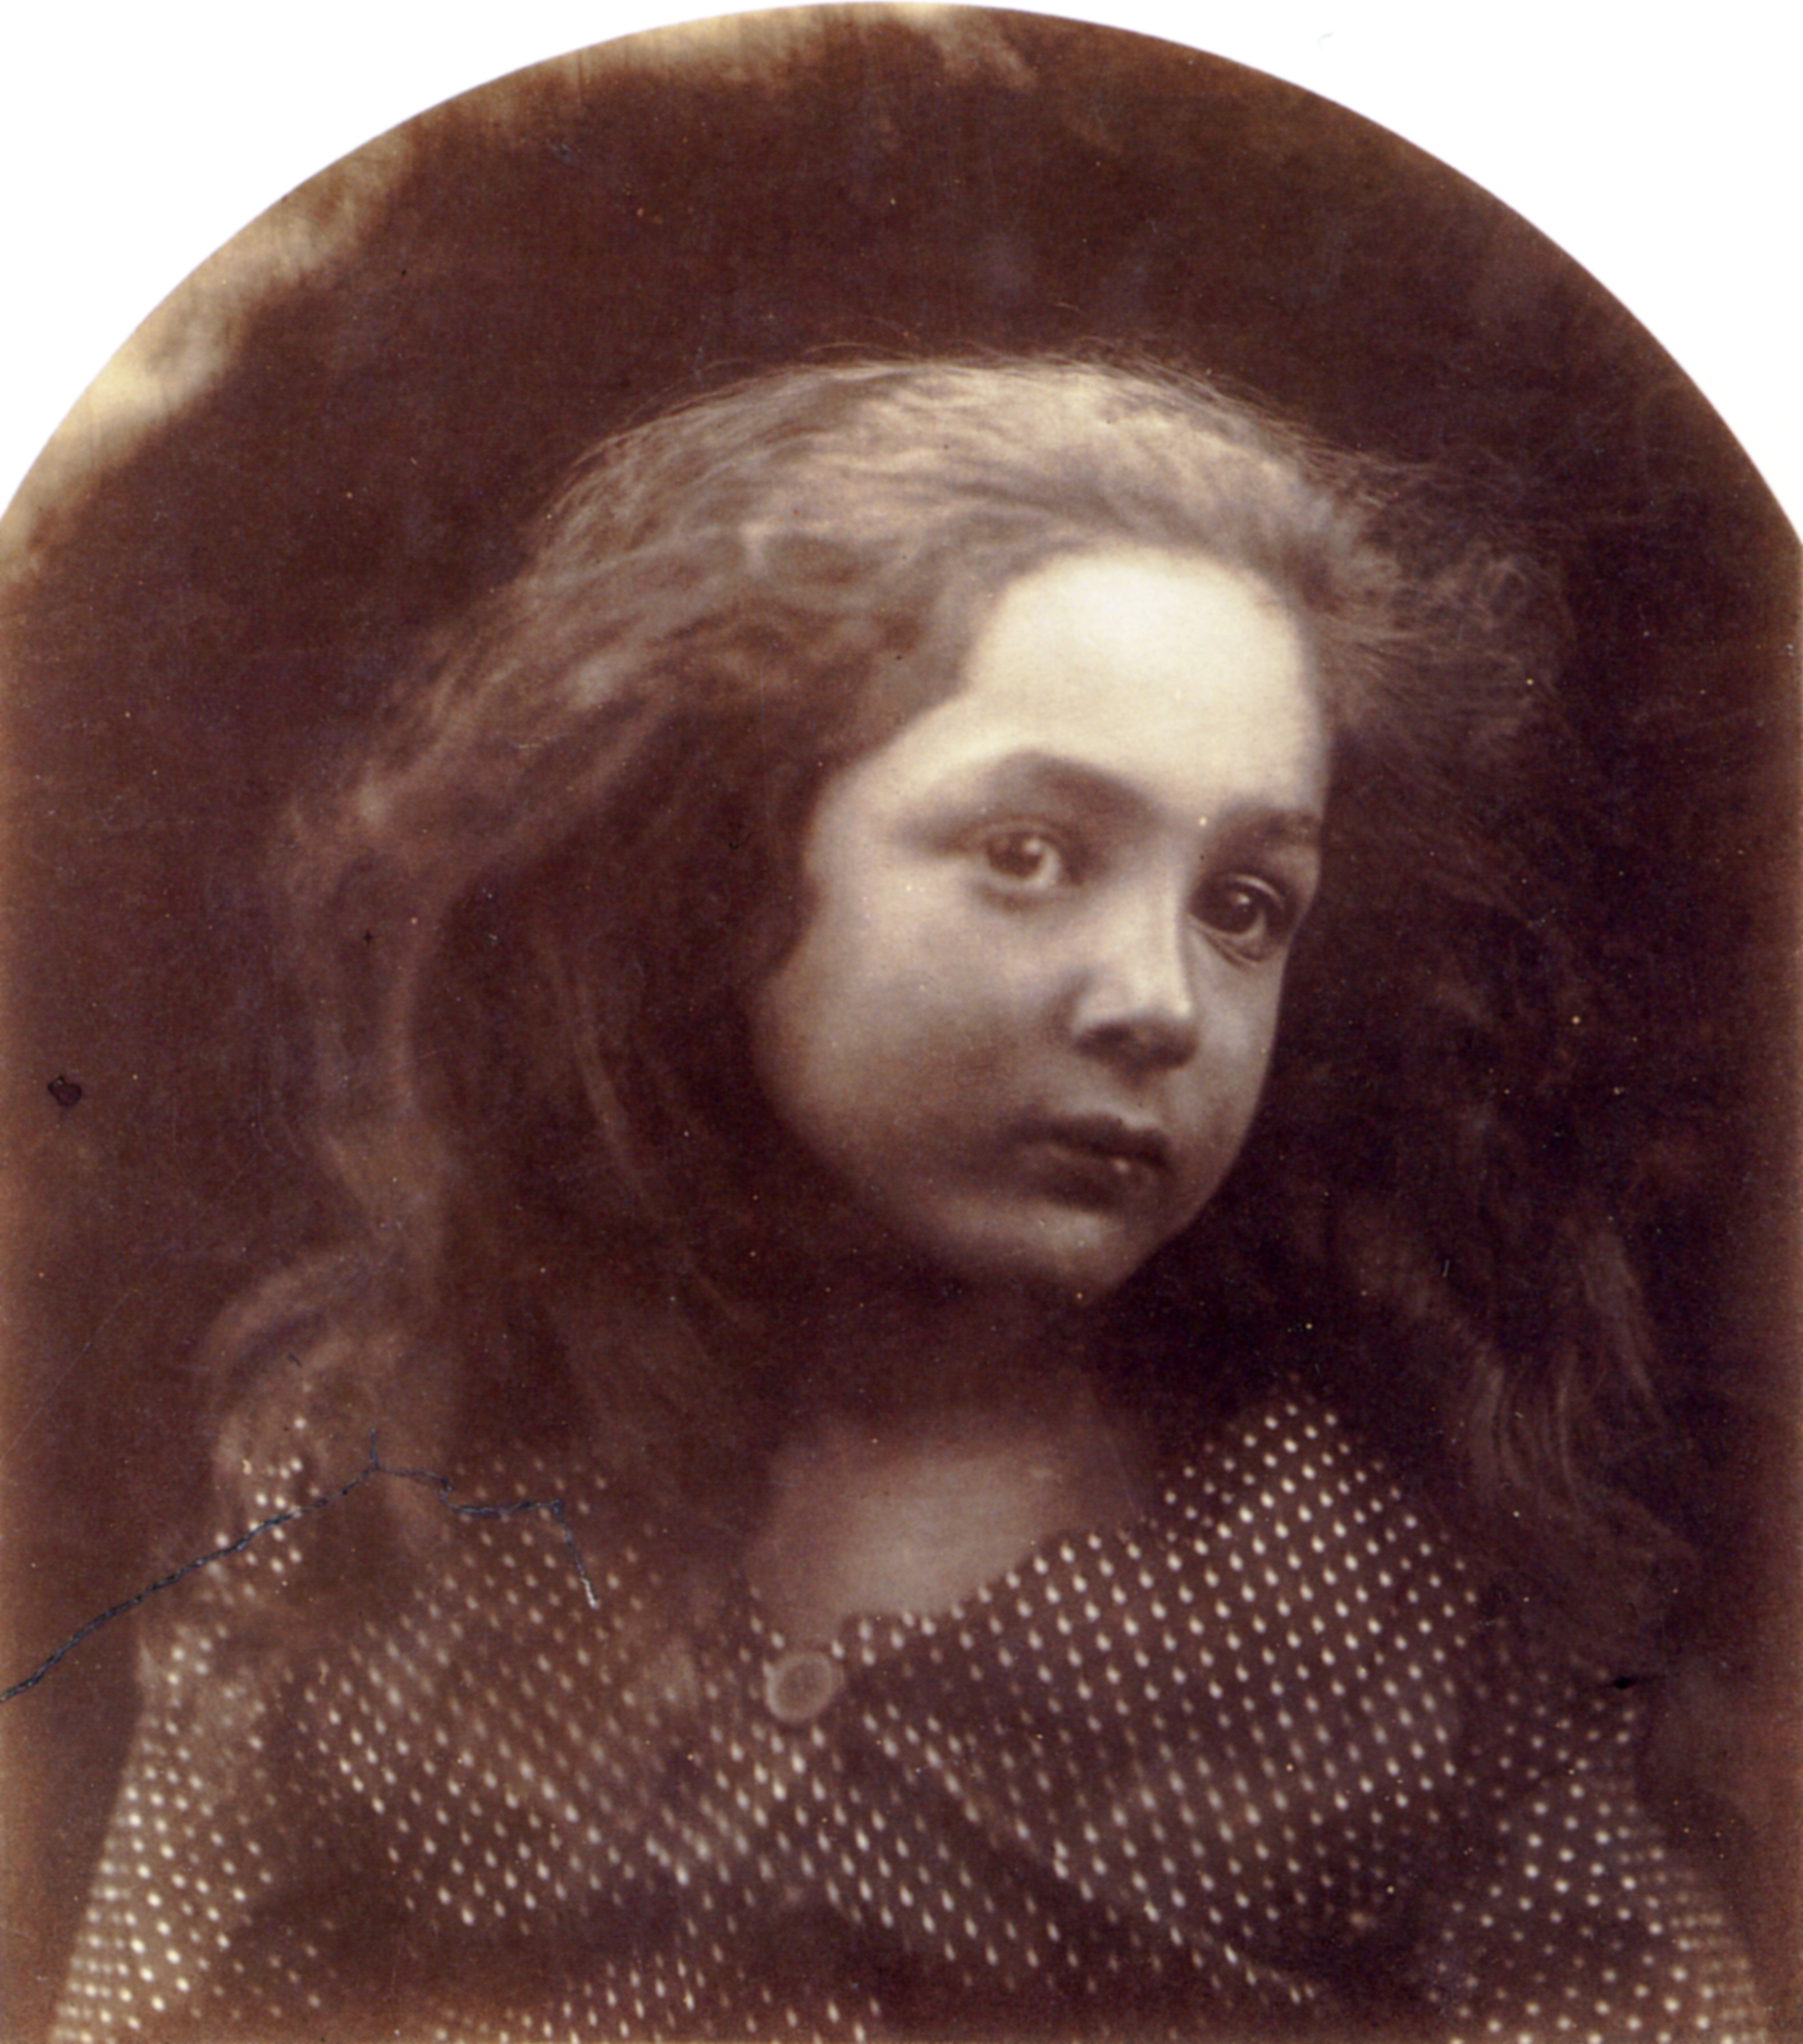 The Victorian aesthetic: Julia Margaret Cameron, 1874